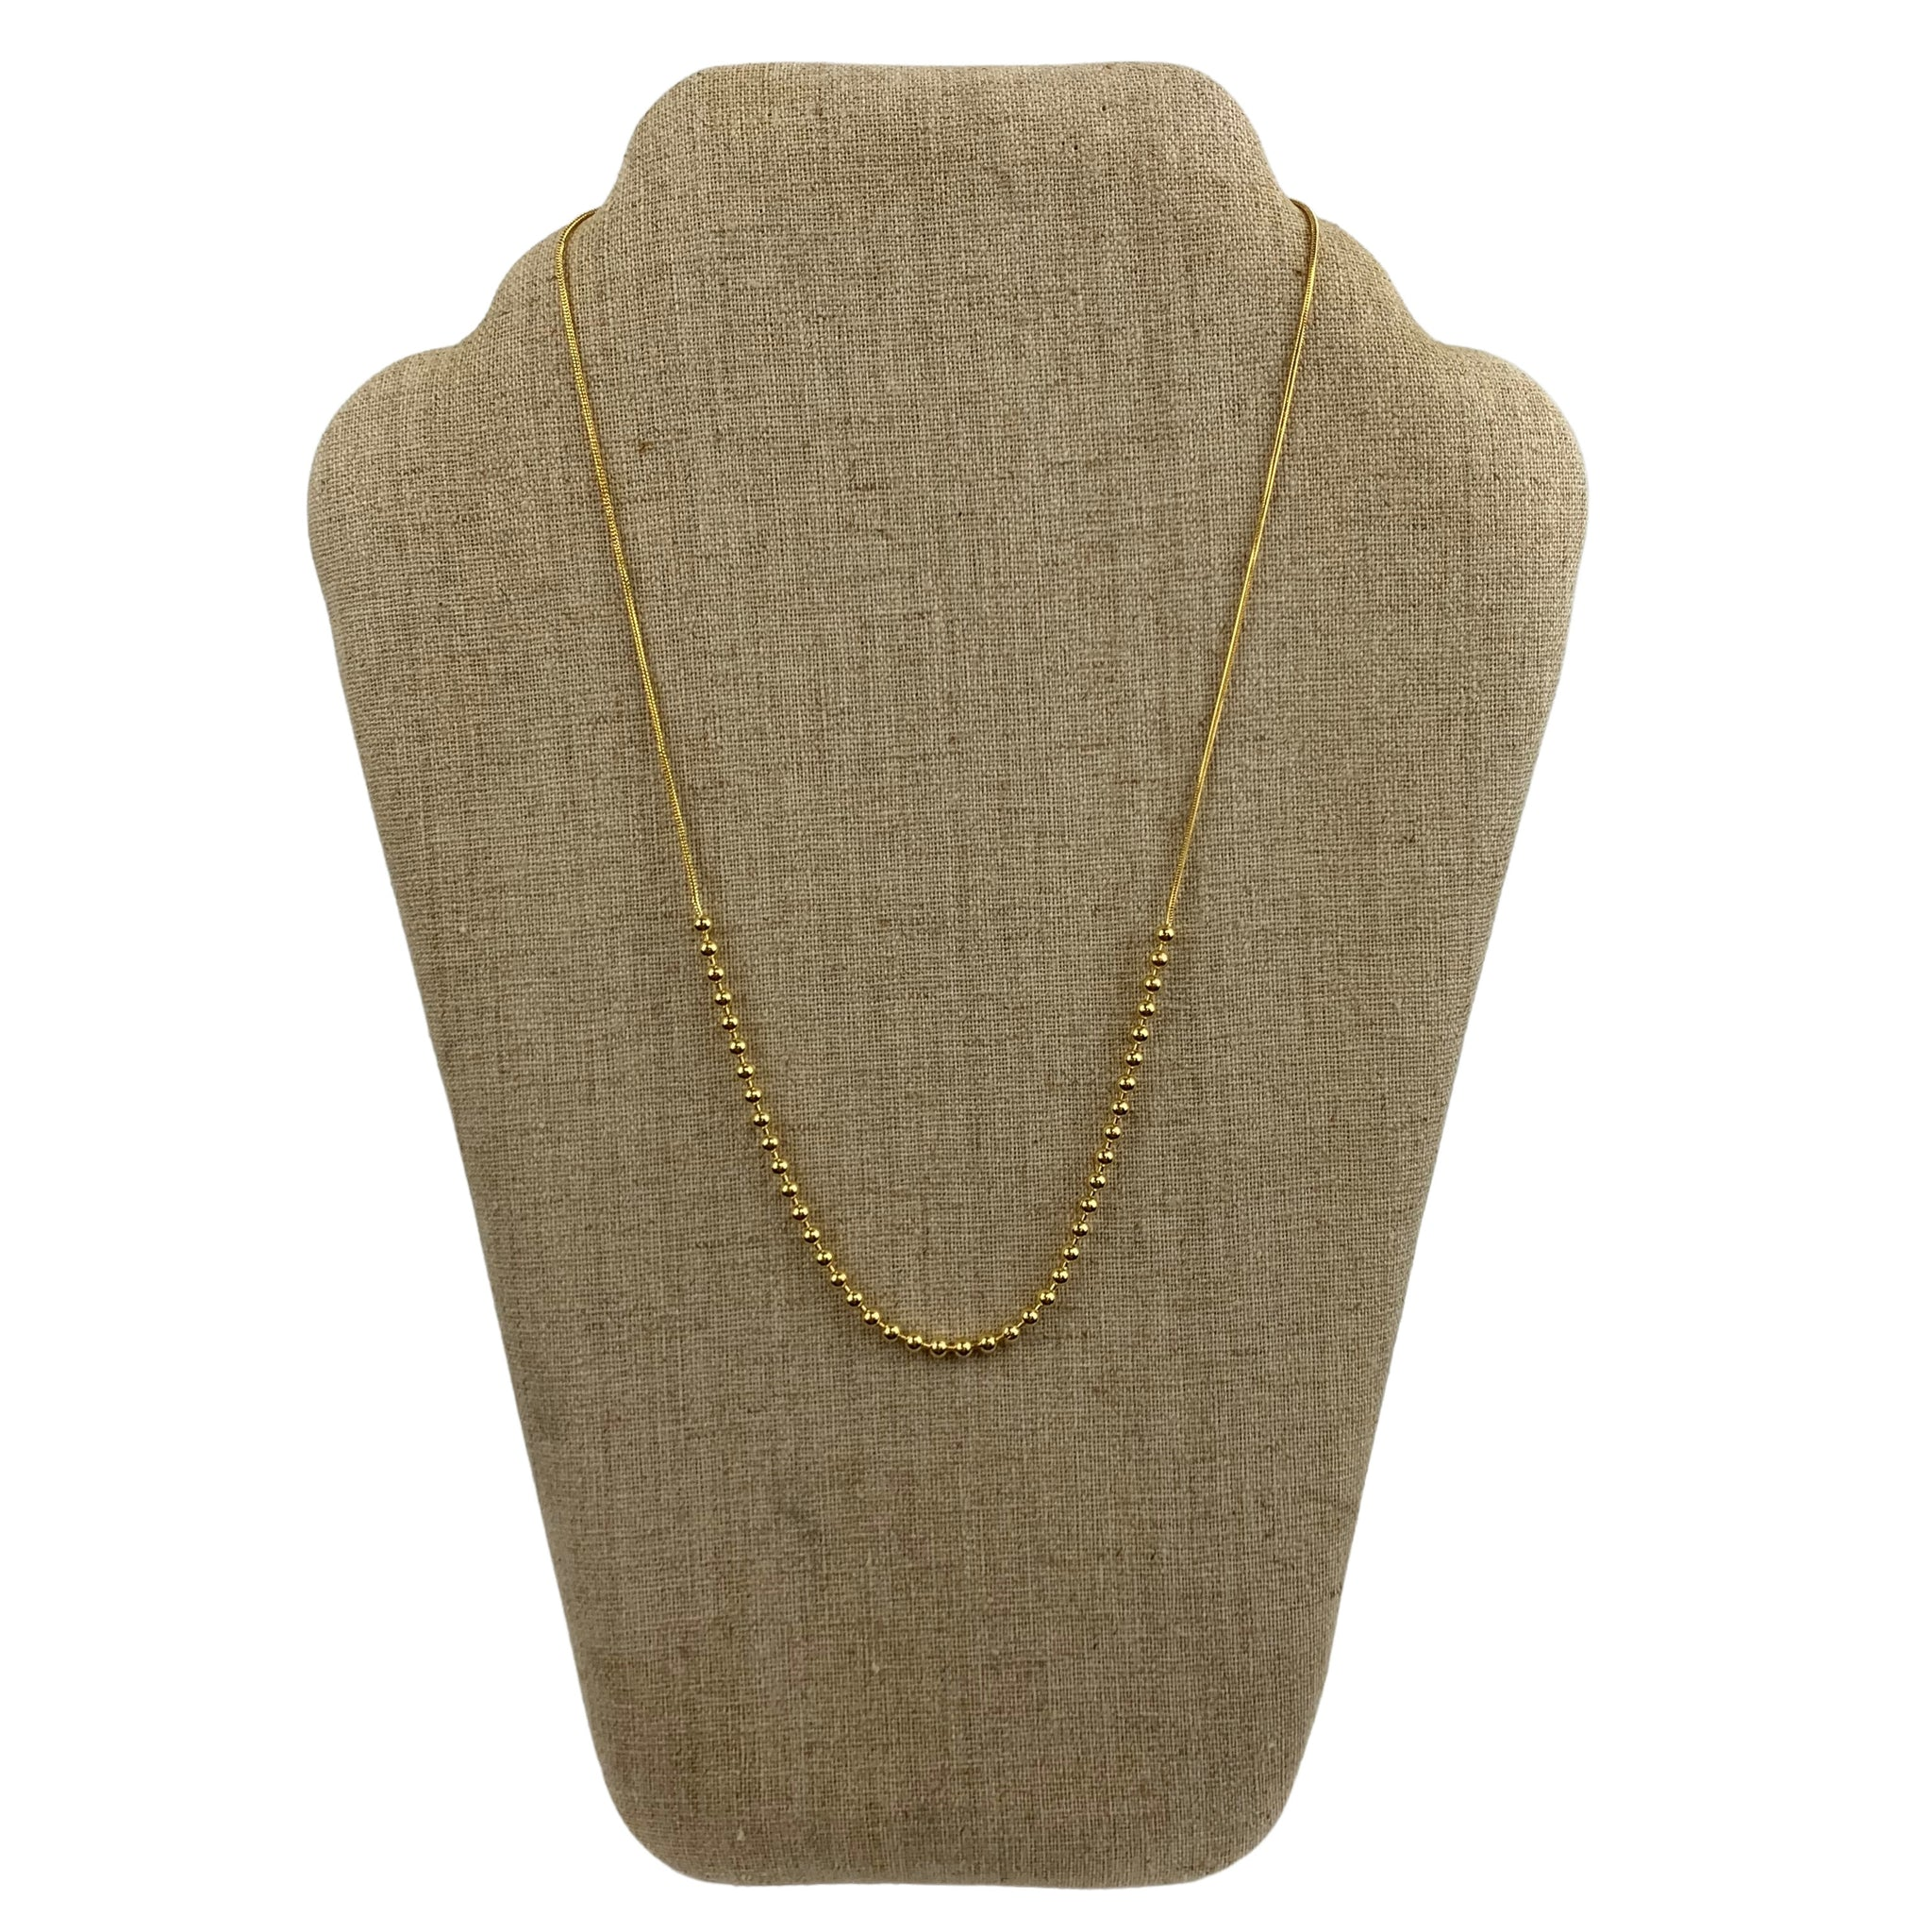 Faux Gold Beaded Necklace - Chic Thrills